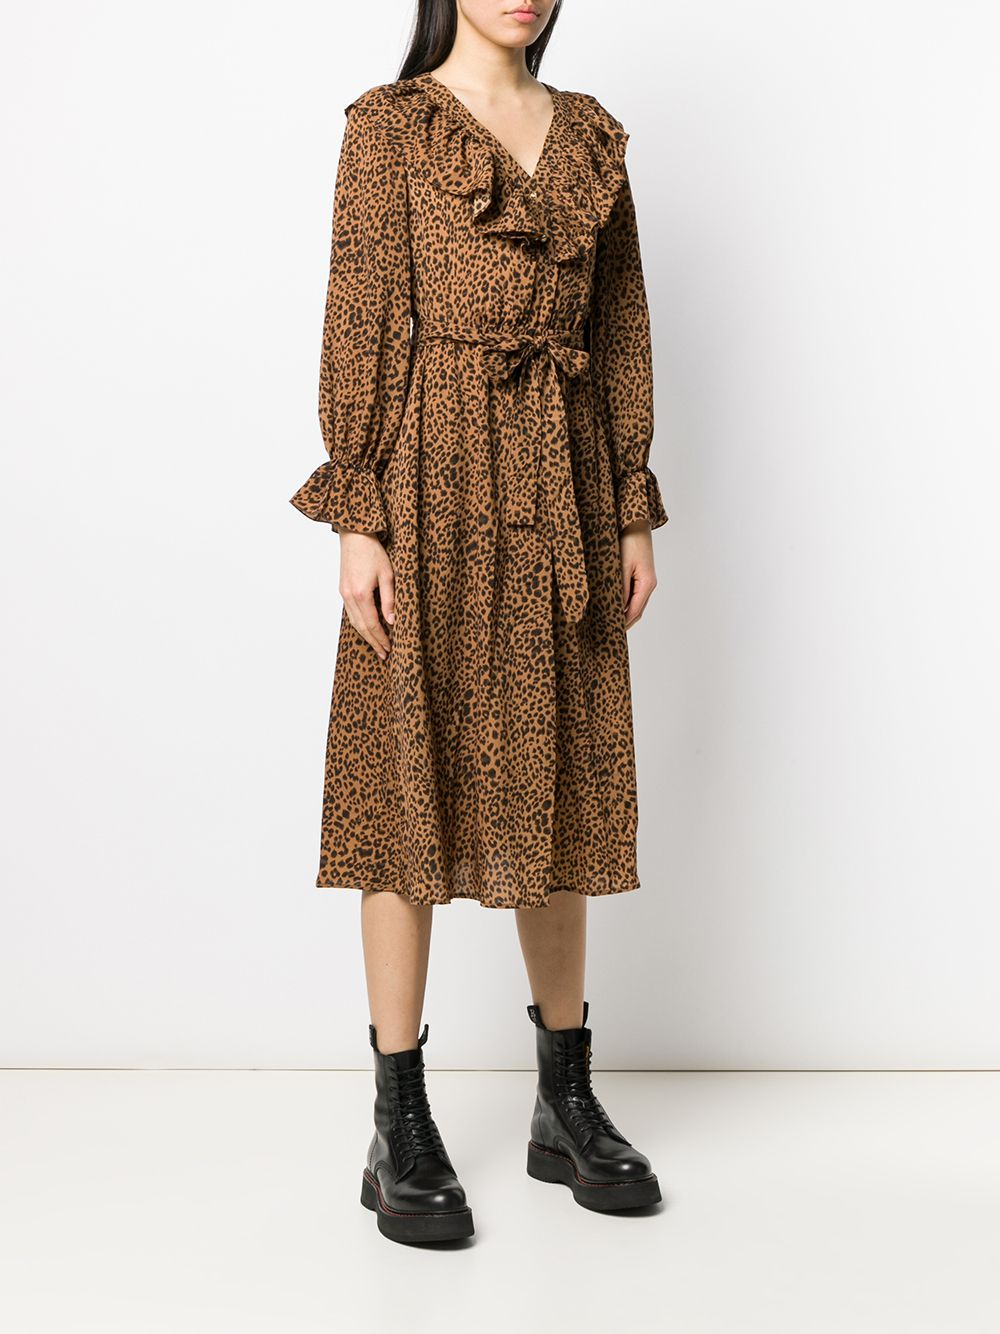 Tan Leopard Print Midi Dress